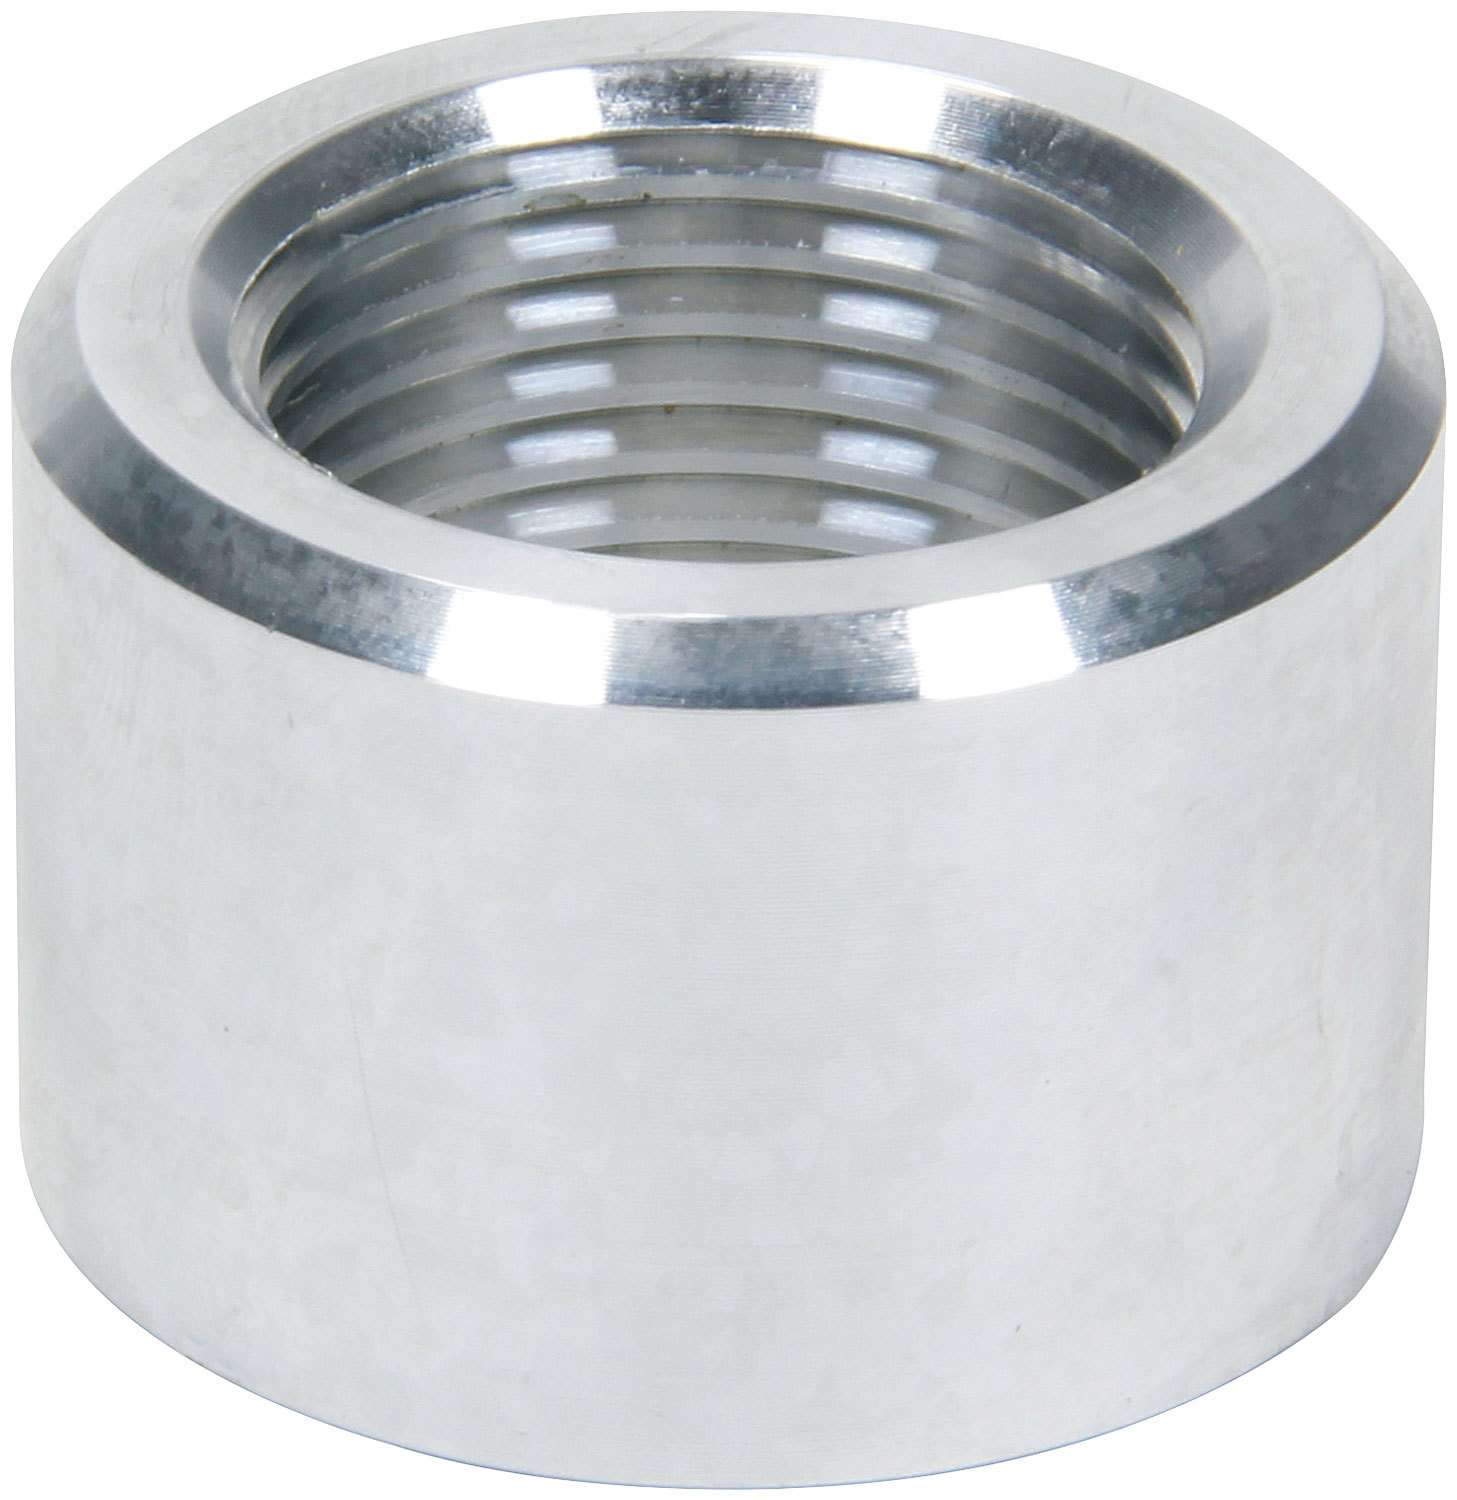 Allstar Performance 50784 Bung, 12 AN Female O-Ring, Weld-On, Aluminum, Natural, Each